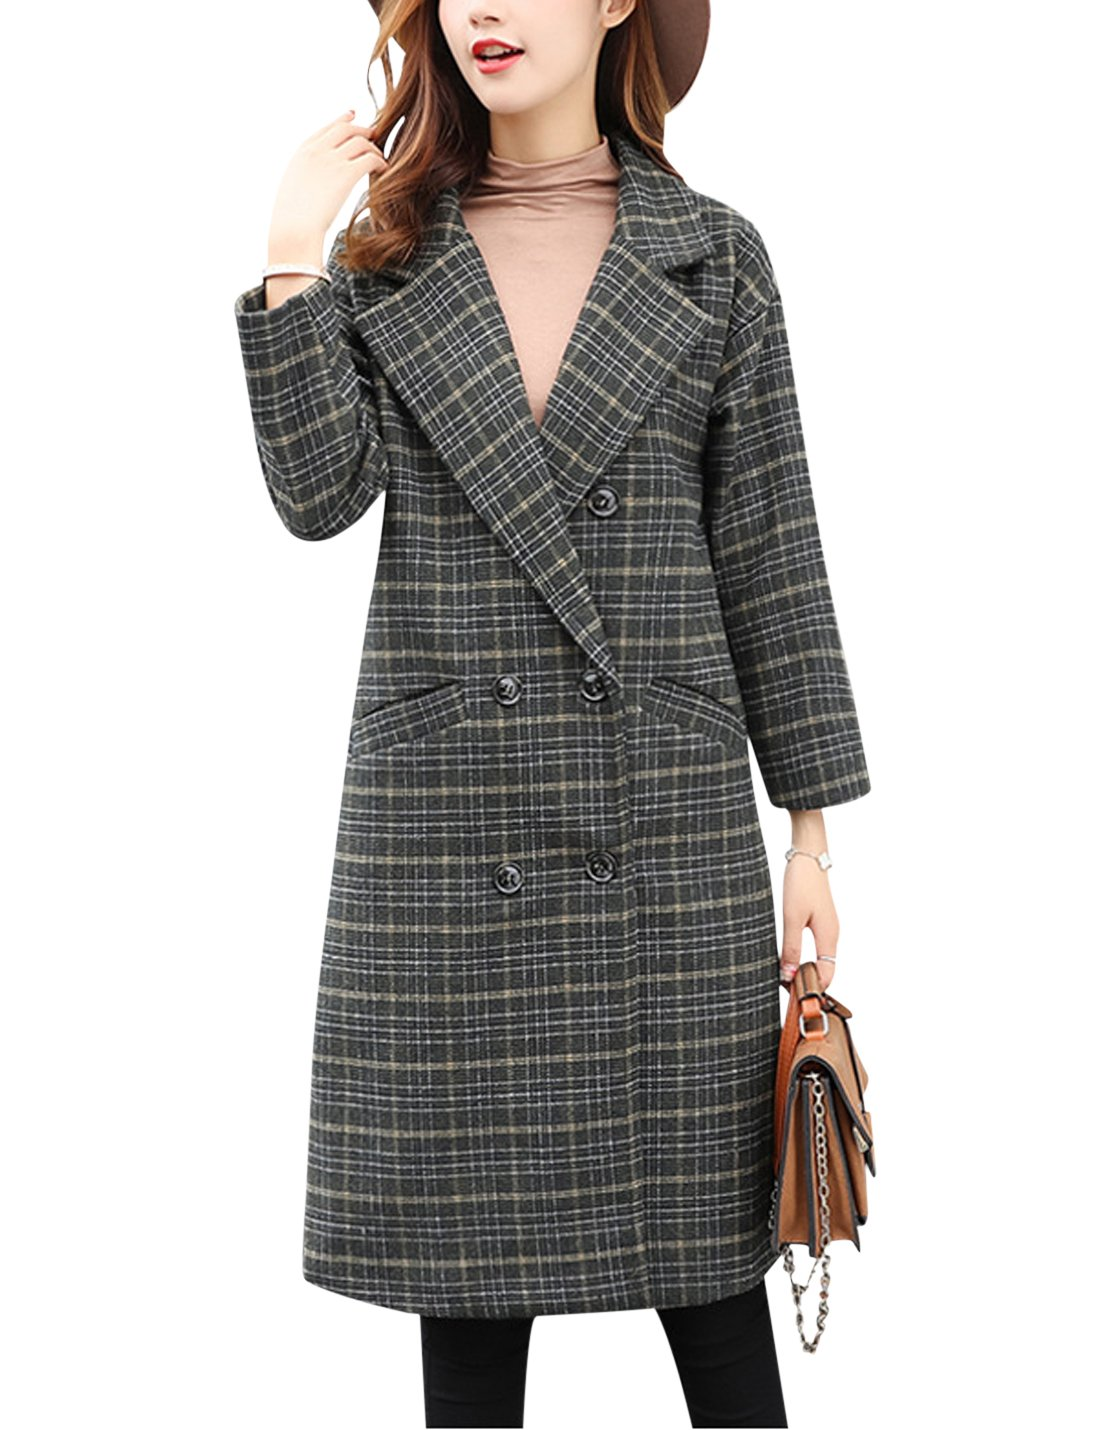 Tanming Women's Double Breasted Long Plaid Wool Blend Pea Coat Outerwear (Medium, Green) by Tanming